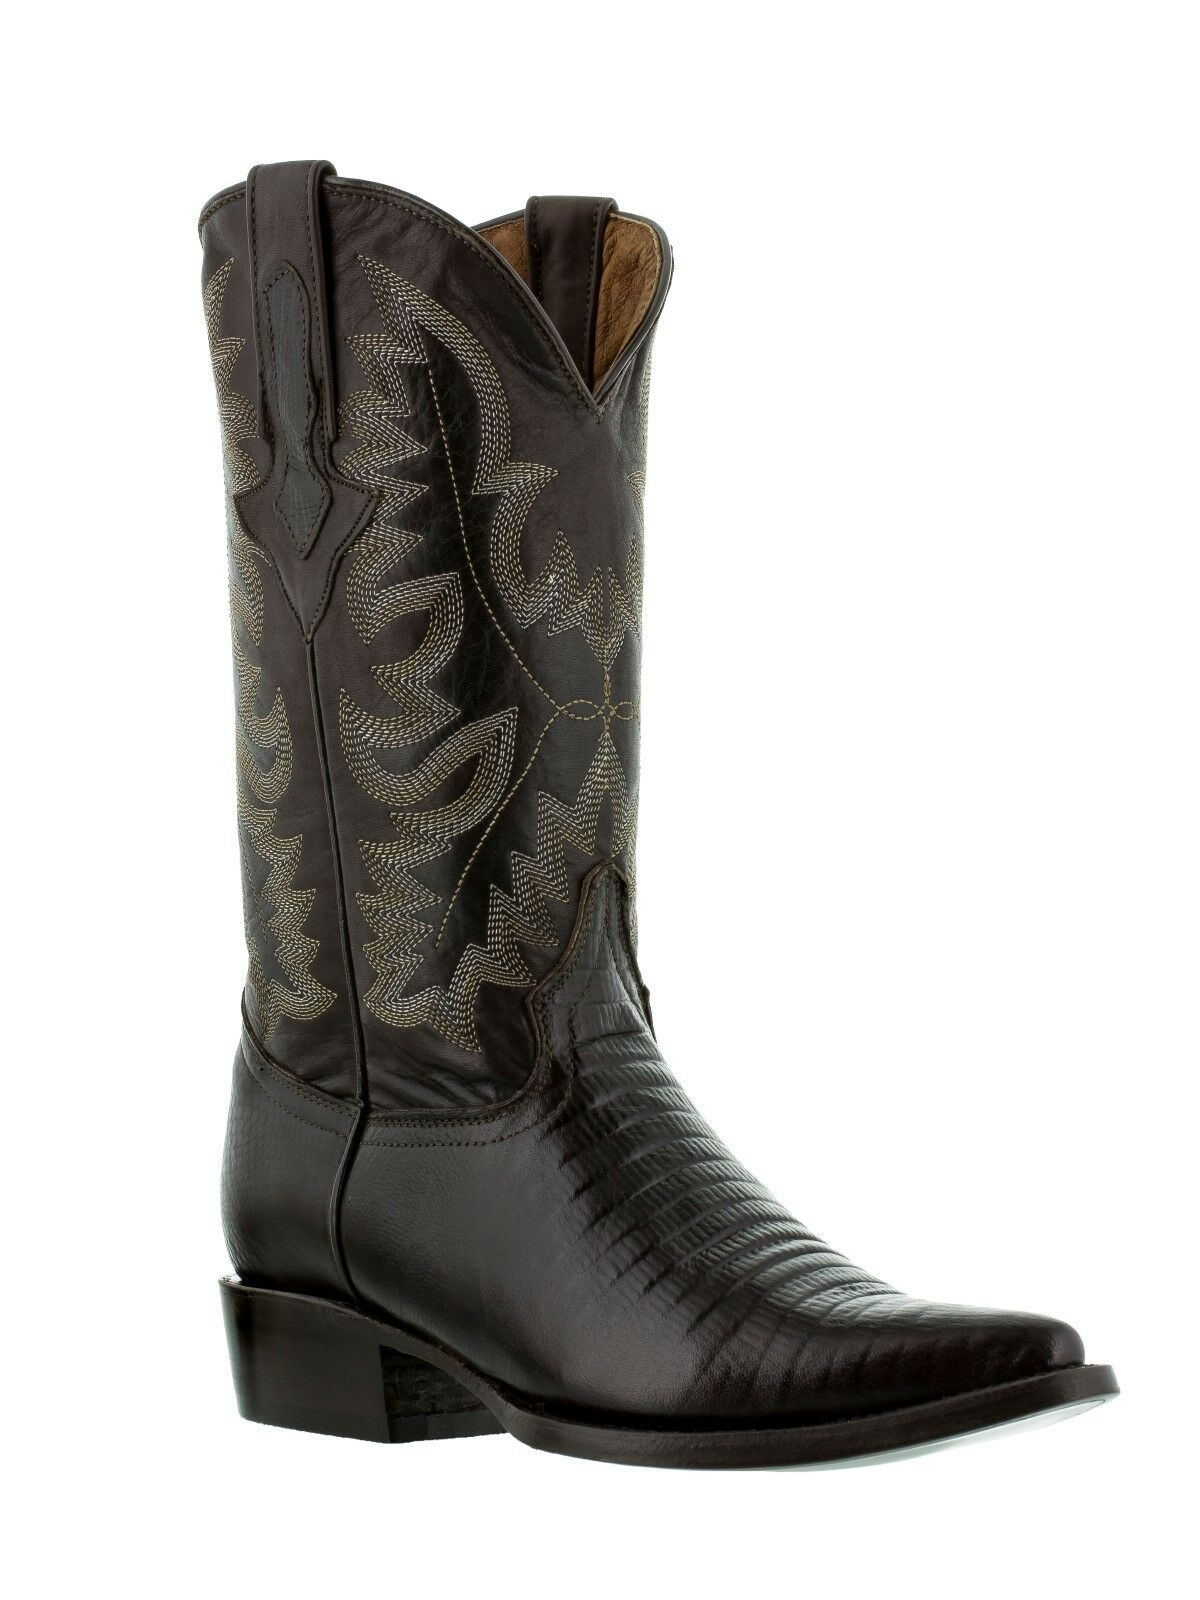 Mens Brown Lizard Design Western Cowboy Leather Boots Alligator Rodeo Armadillo